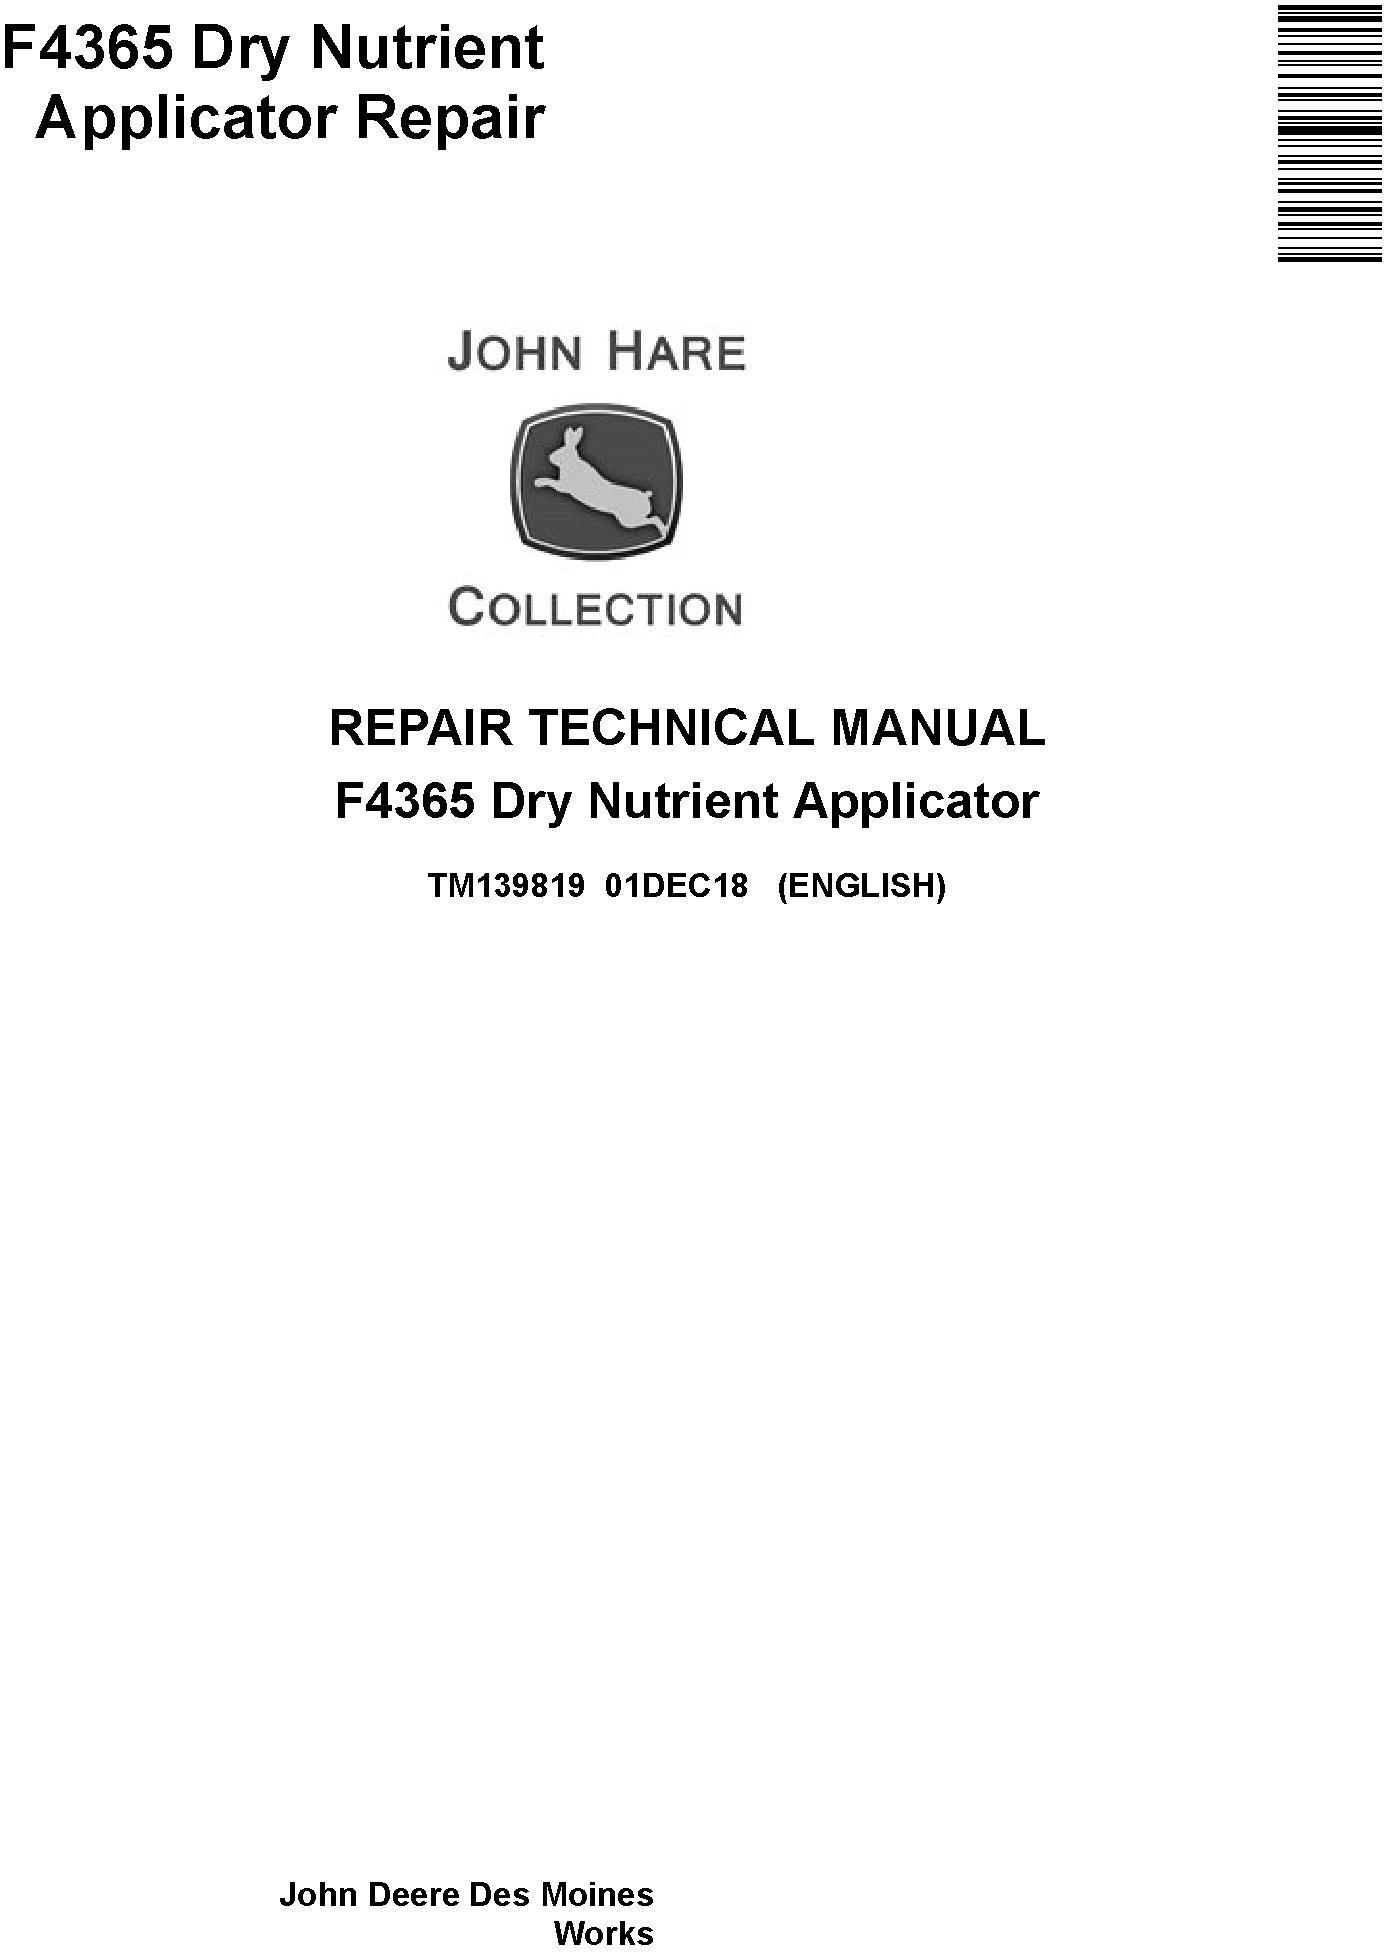 John Deere F4365 Dry Nutrient Applicator Service Repair Technical Manual (TM139819) - 19240